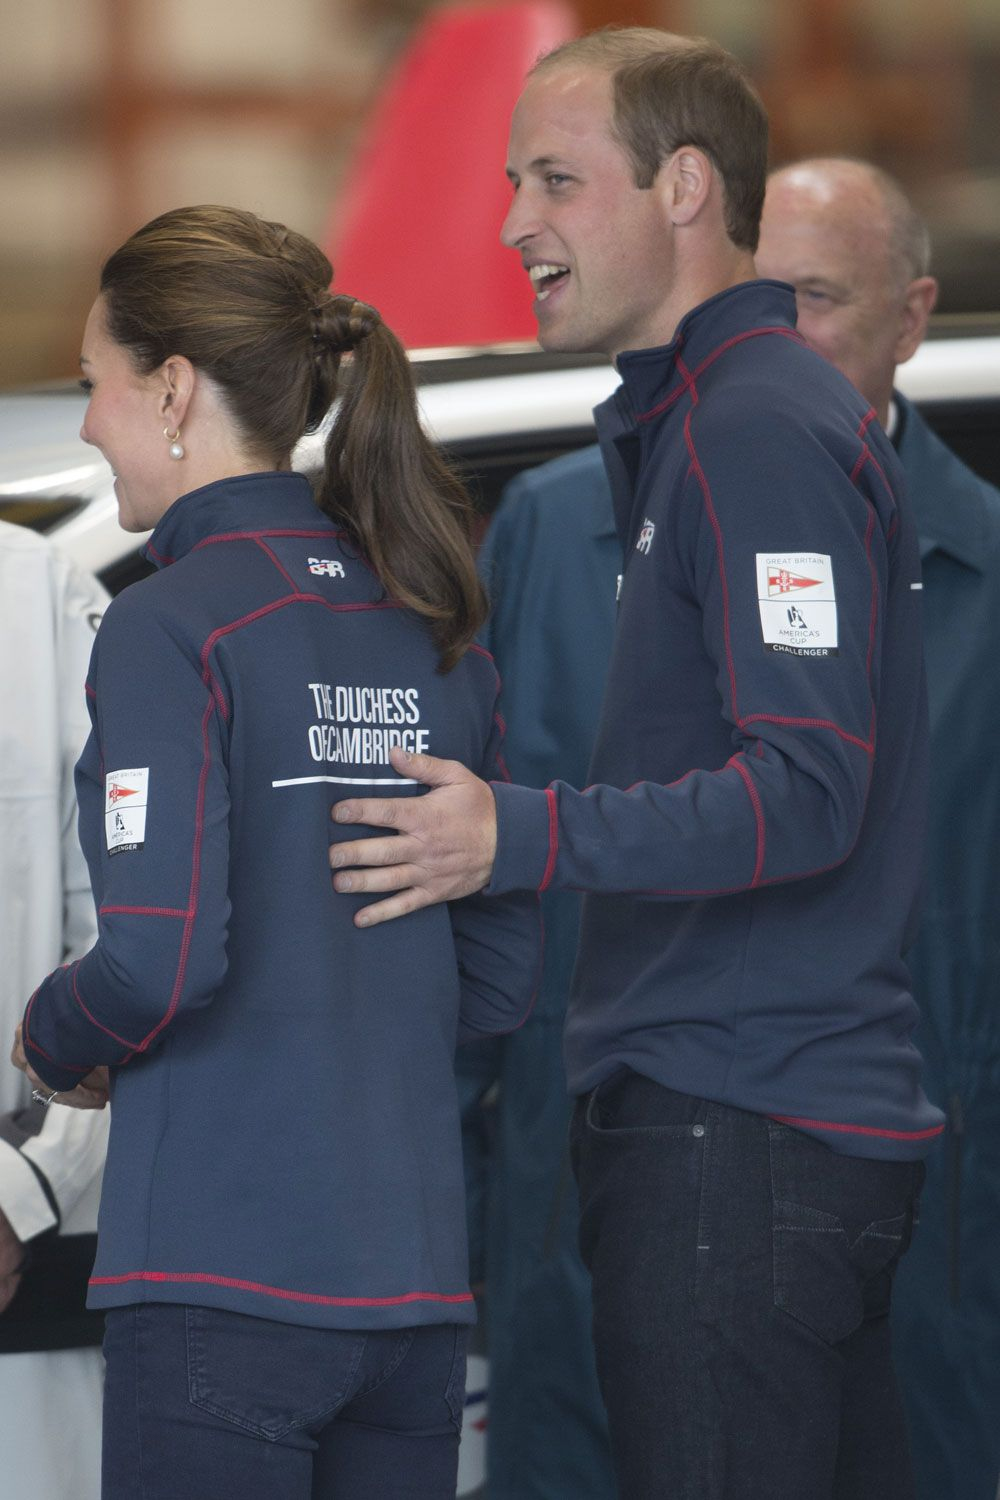 Matching fleeces?! Only Kate Middleton and Prince William could pull this off...